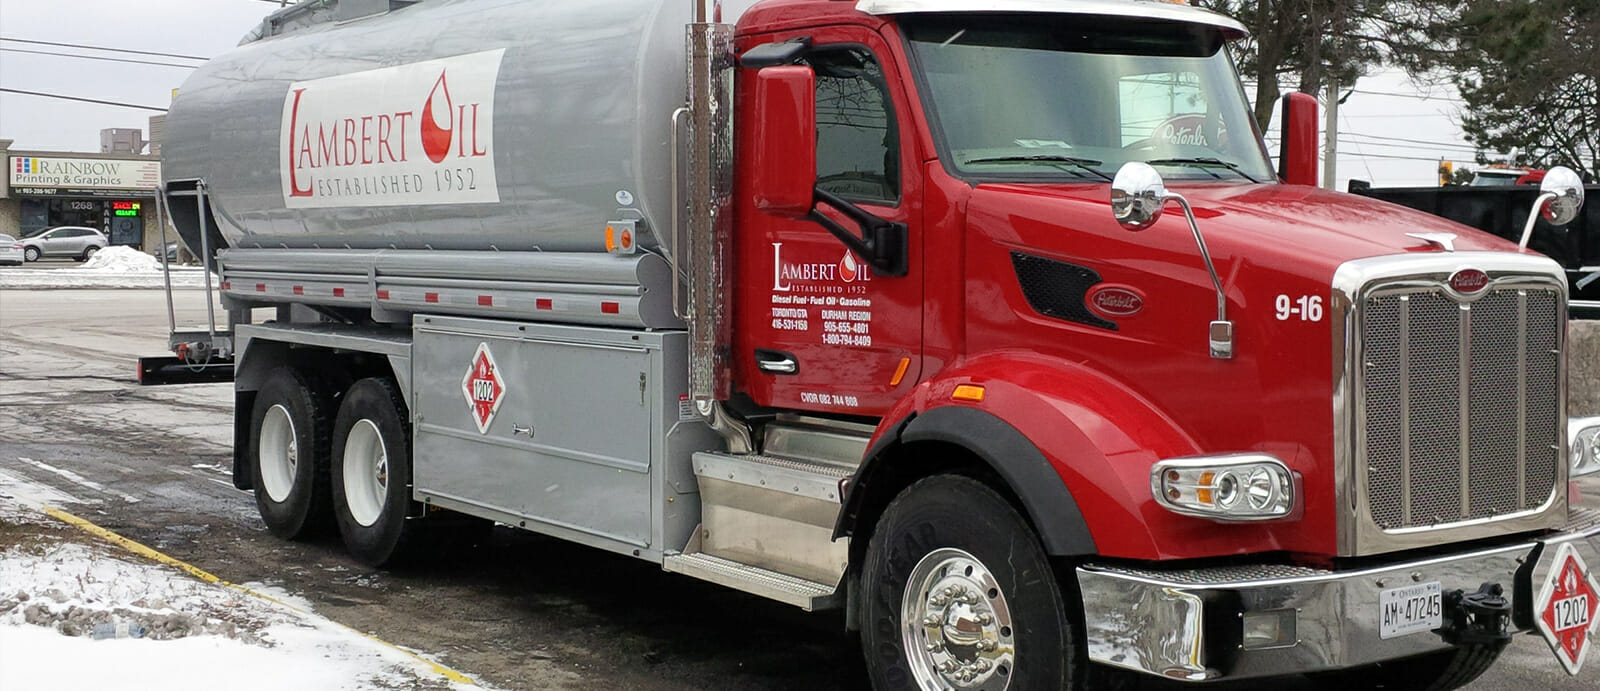 Delivery Turnaround & Locations | Lambert Oil